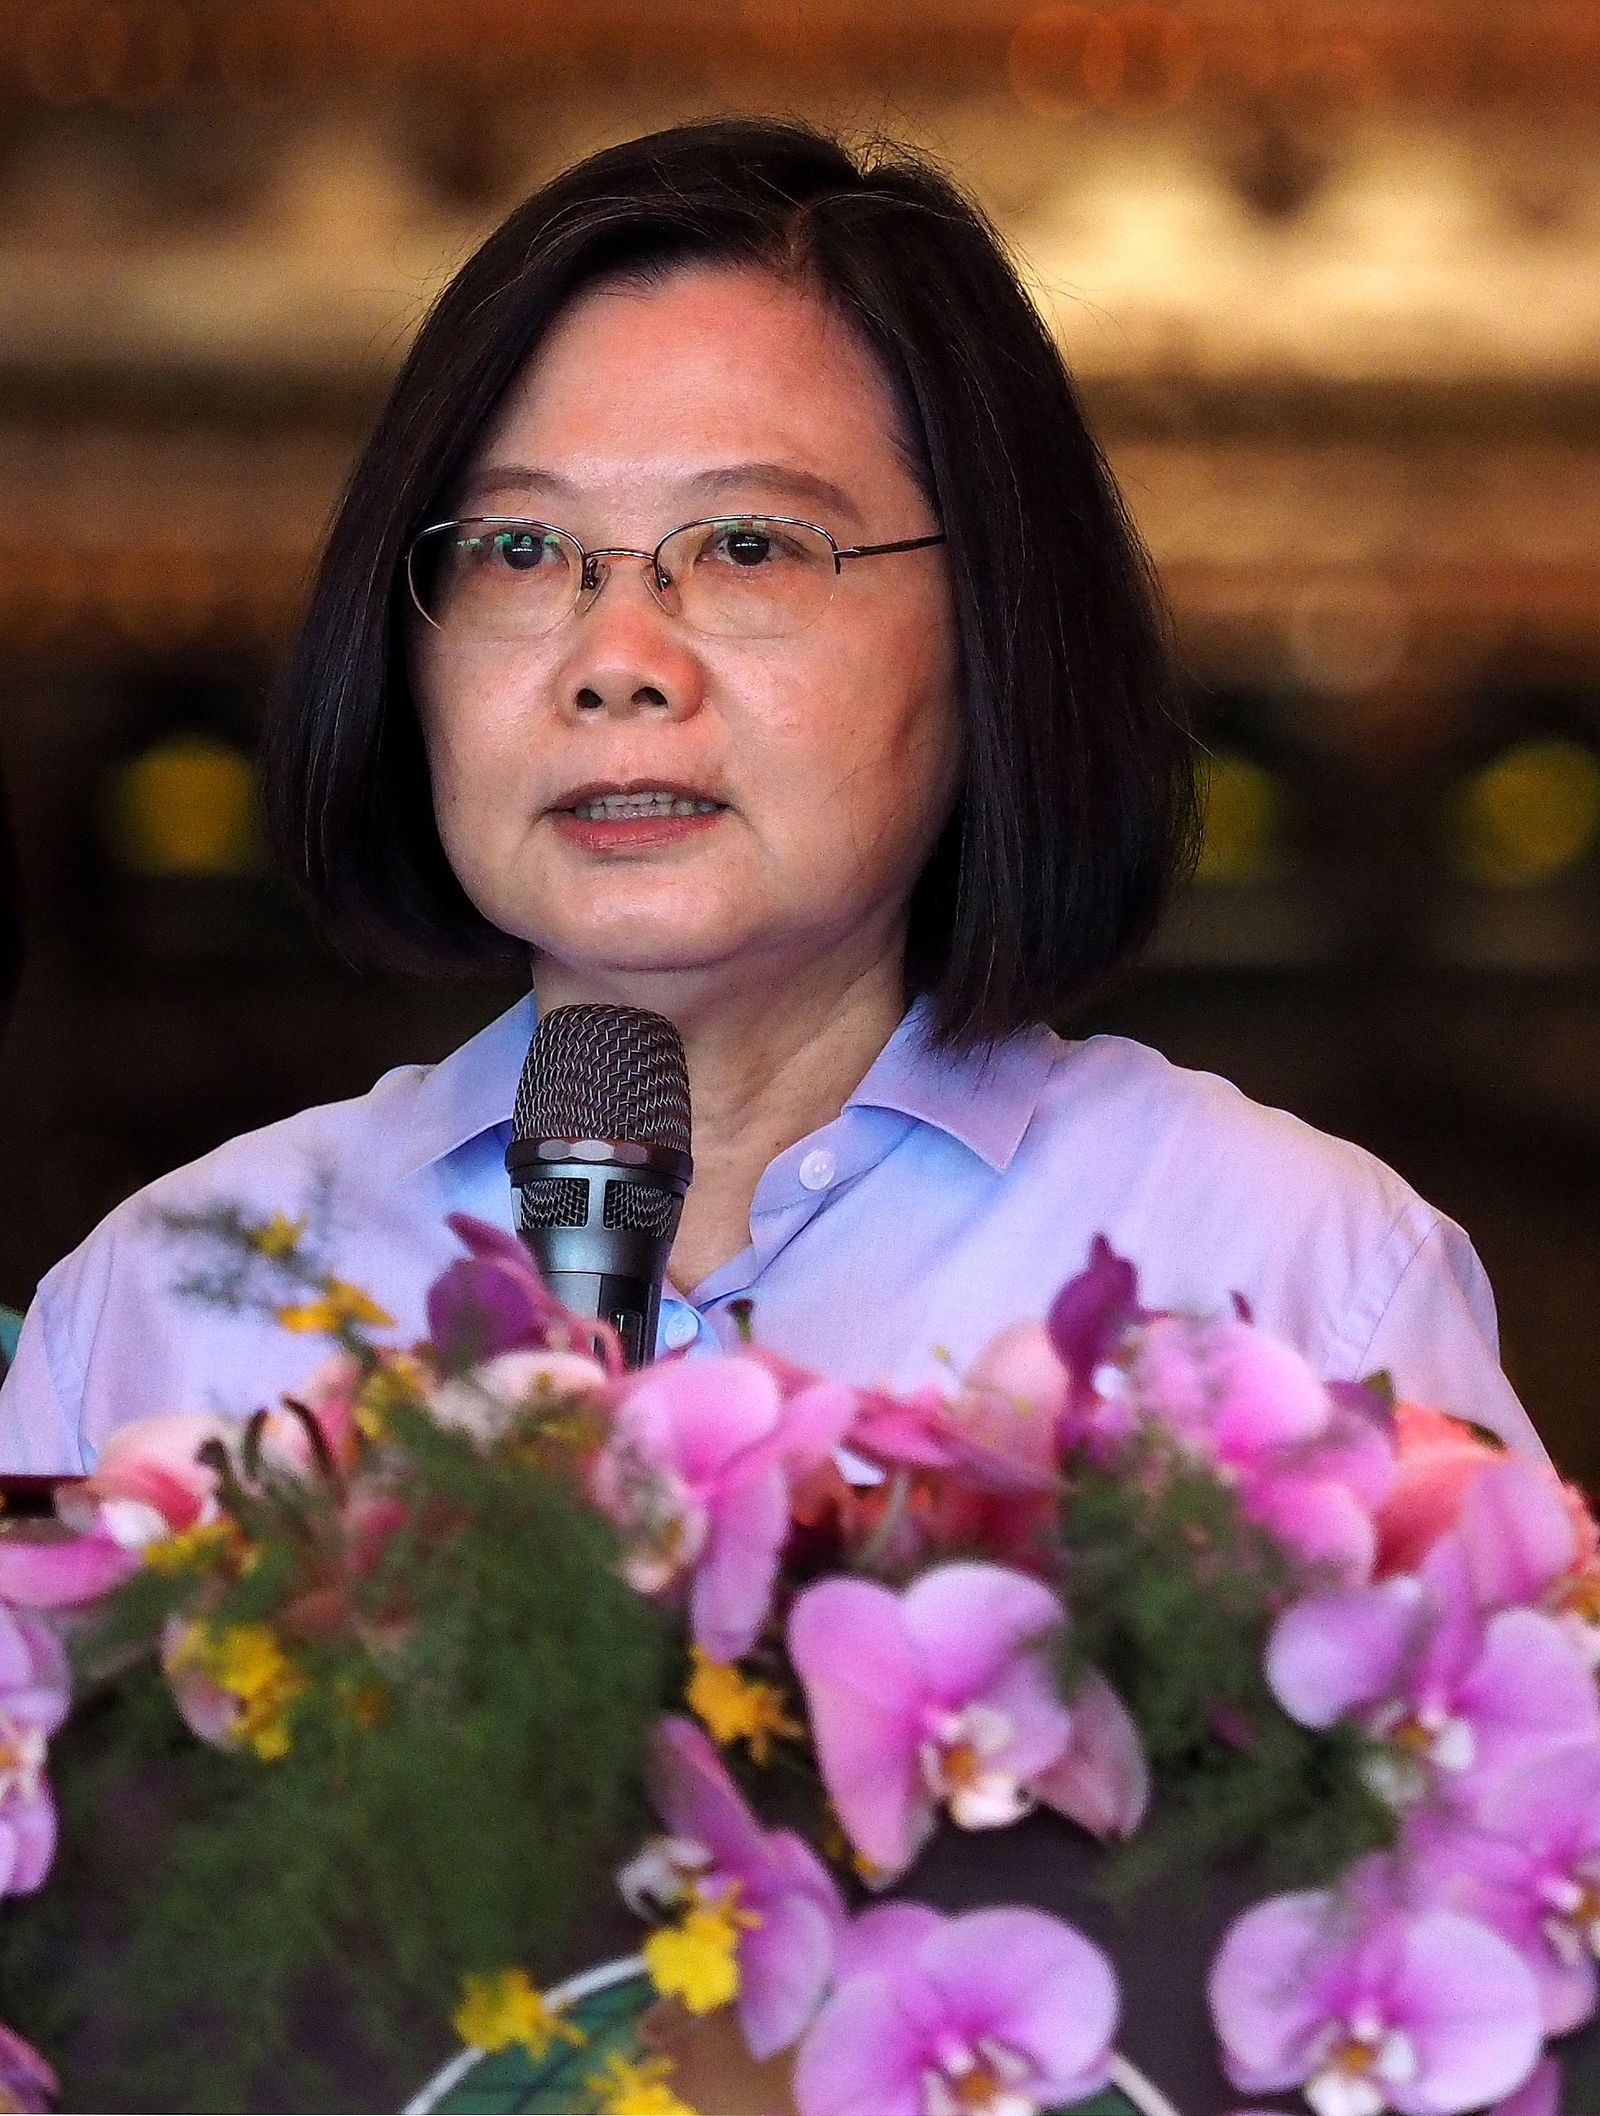 Taiwan persident calls China's drills 'a threat to the whole region', Taipei - 08 Jul 2020